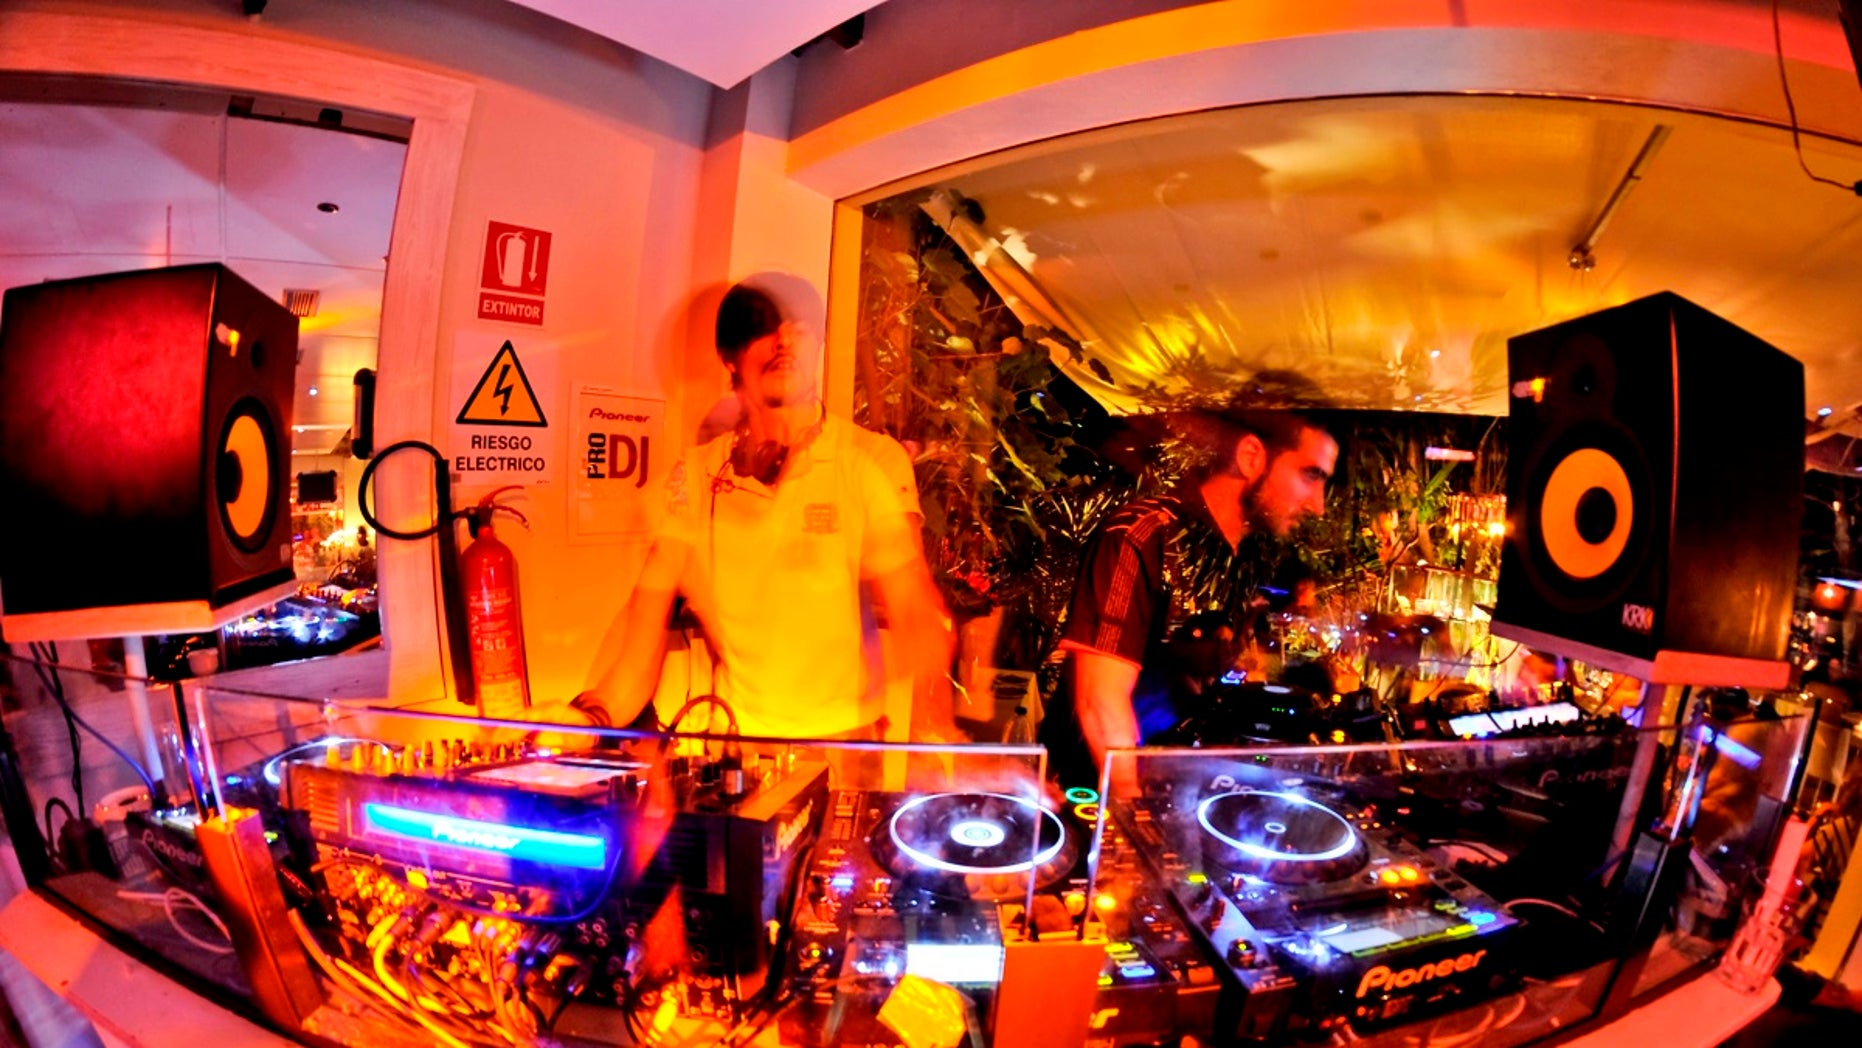 Want to get your groove on this summer? Spain has parties a-plenty.